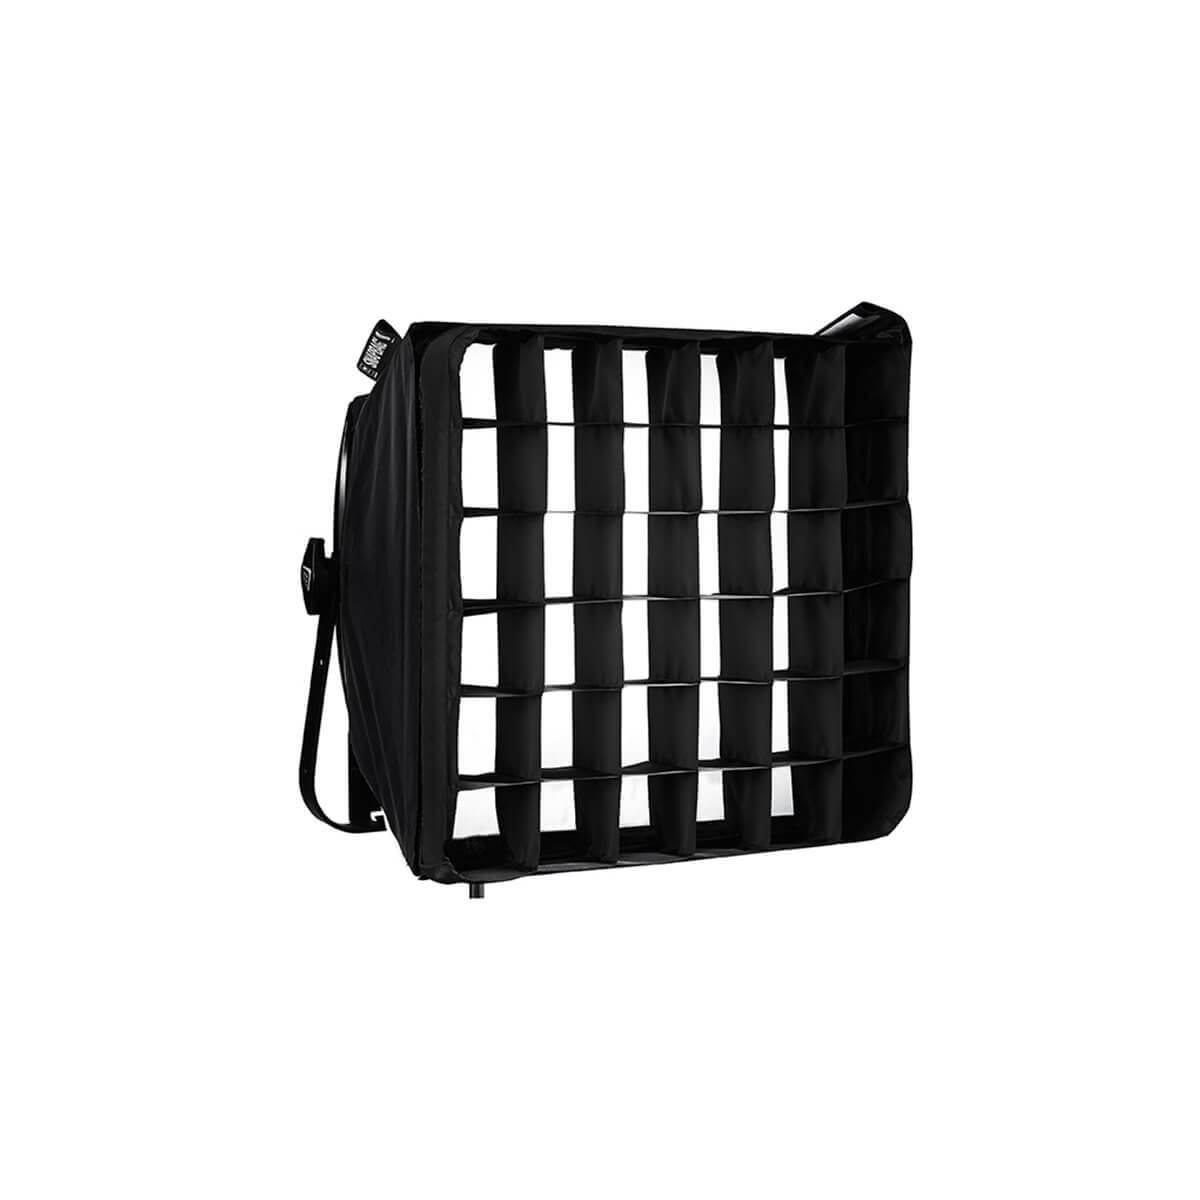 40° Snapgrid Eggcrate for Snapbag Softbox for Astra 1x1 and Hilio D12/T12